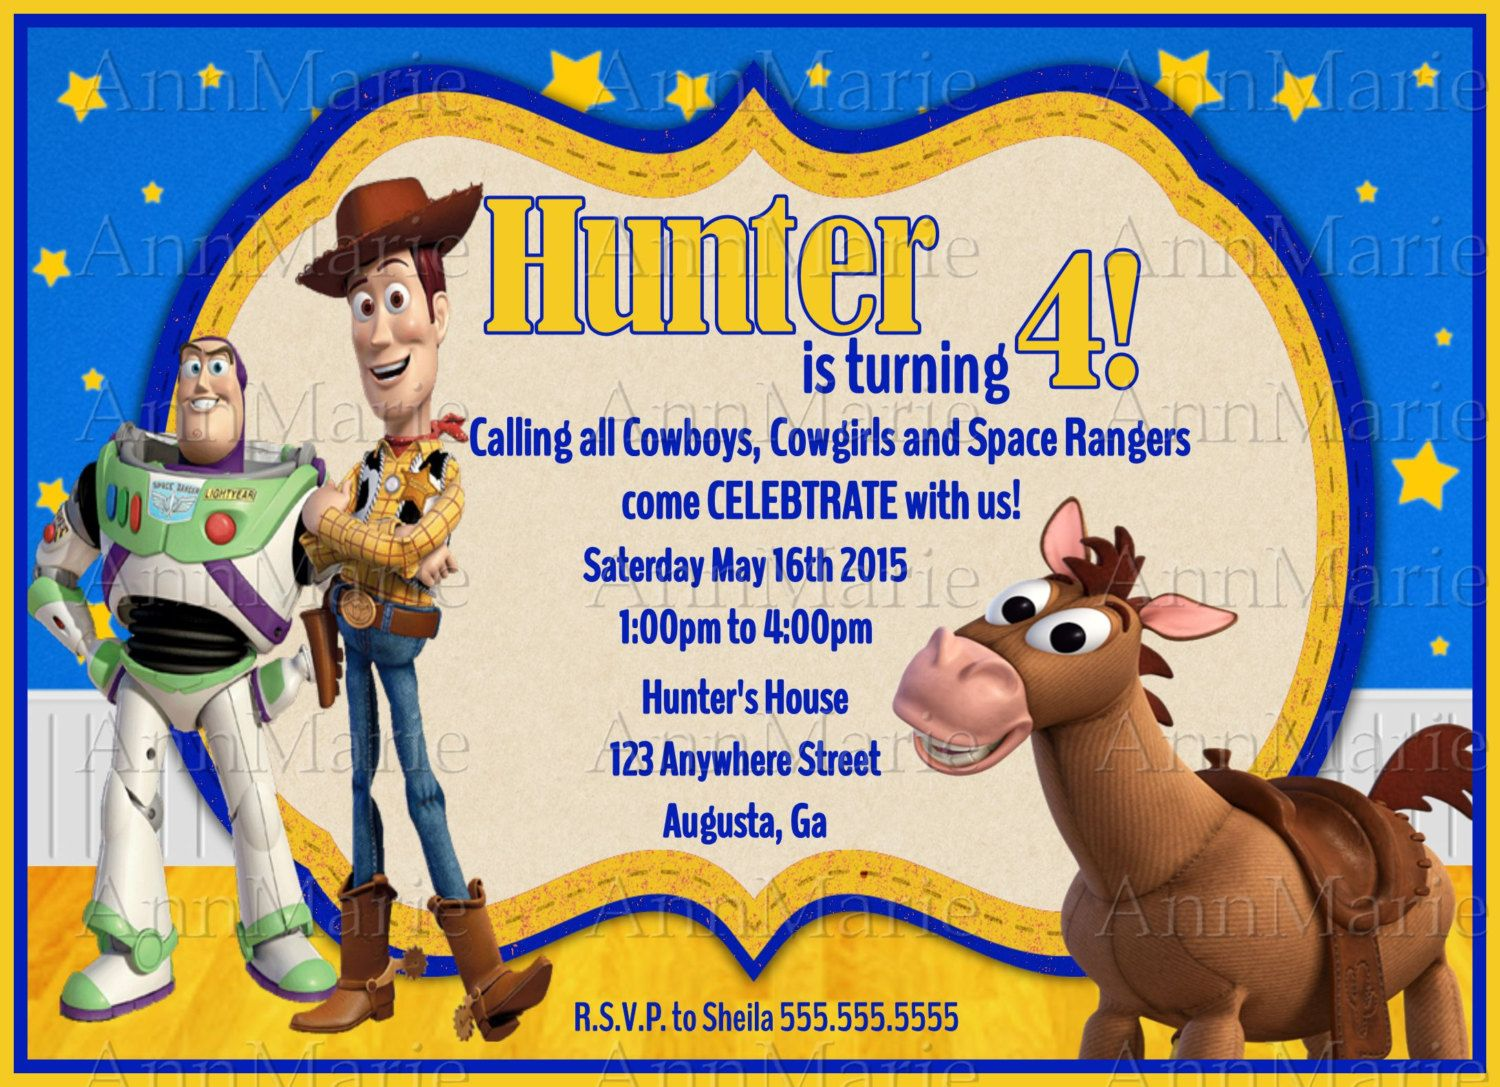 Toy Story Inspired Birthday Party Invitation choose from two ...